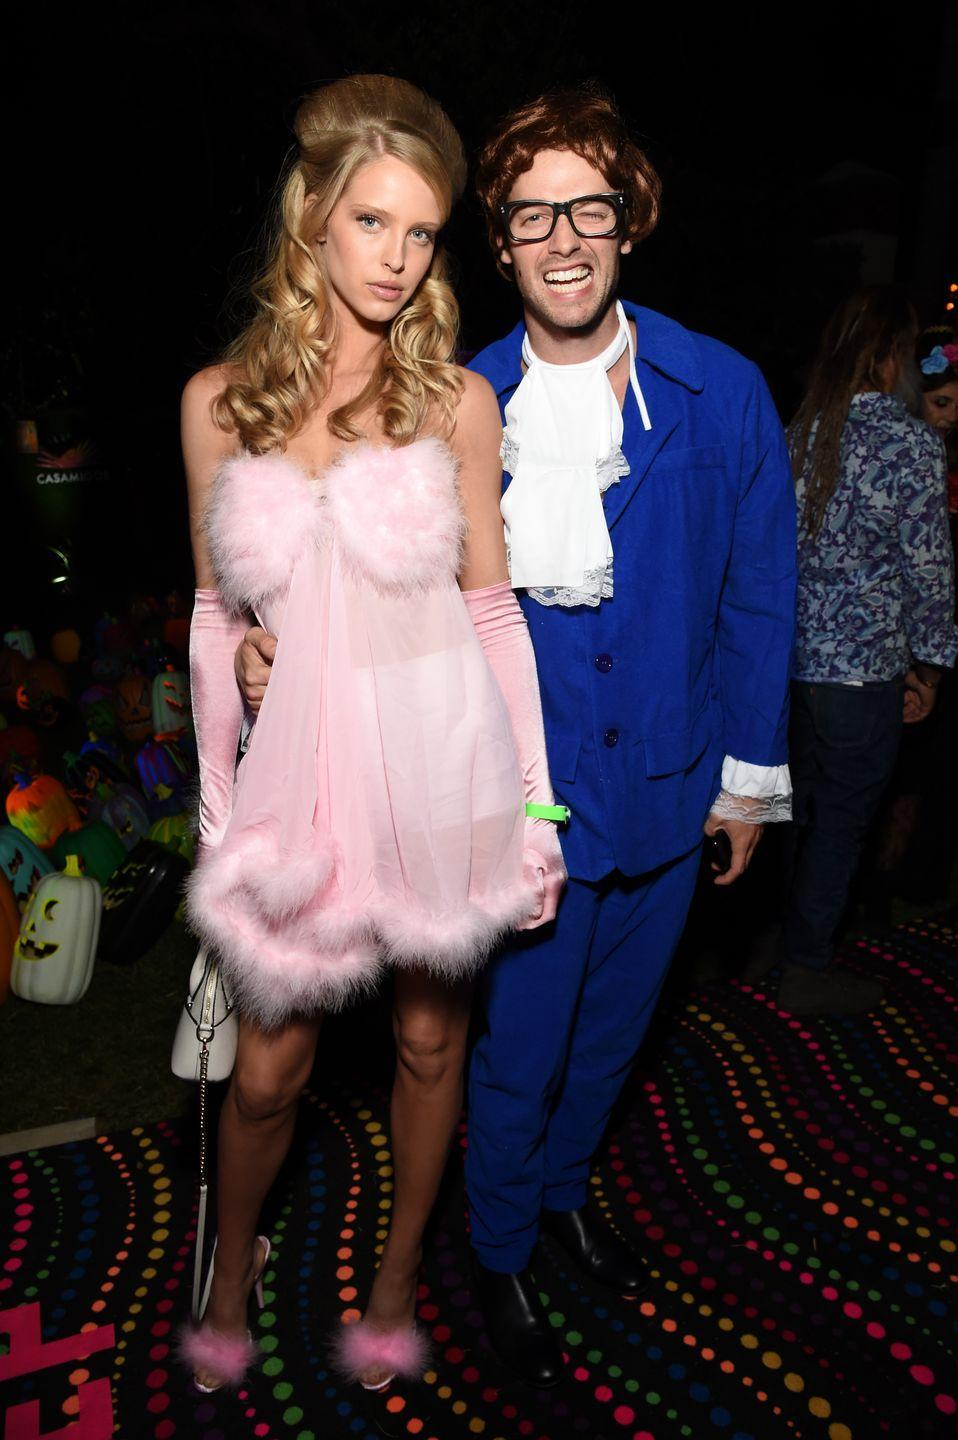 <p>Patrick Schwarzenegger gives the camera his best Austin Powers impersonation (honestly, not bad), and Abby Champion stuns as the film's female lead at a party in 2018. </p>